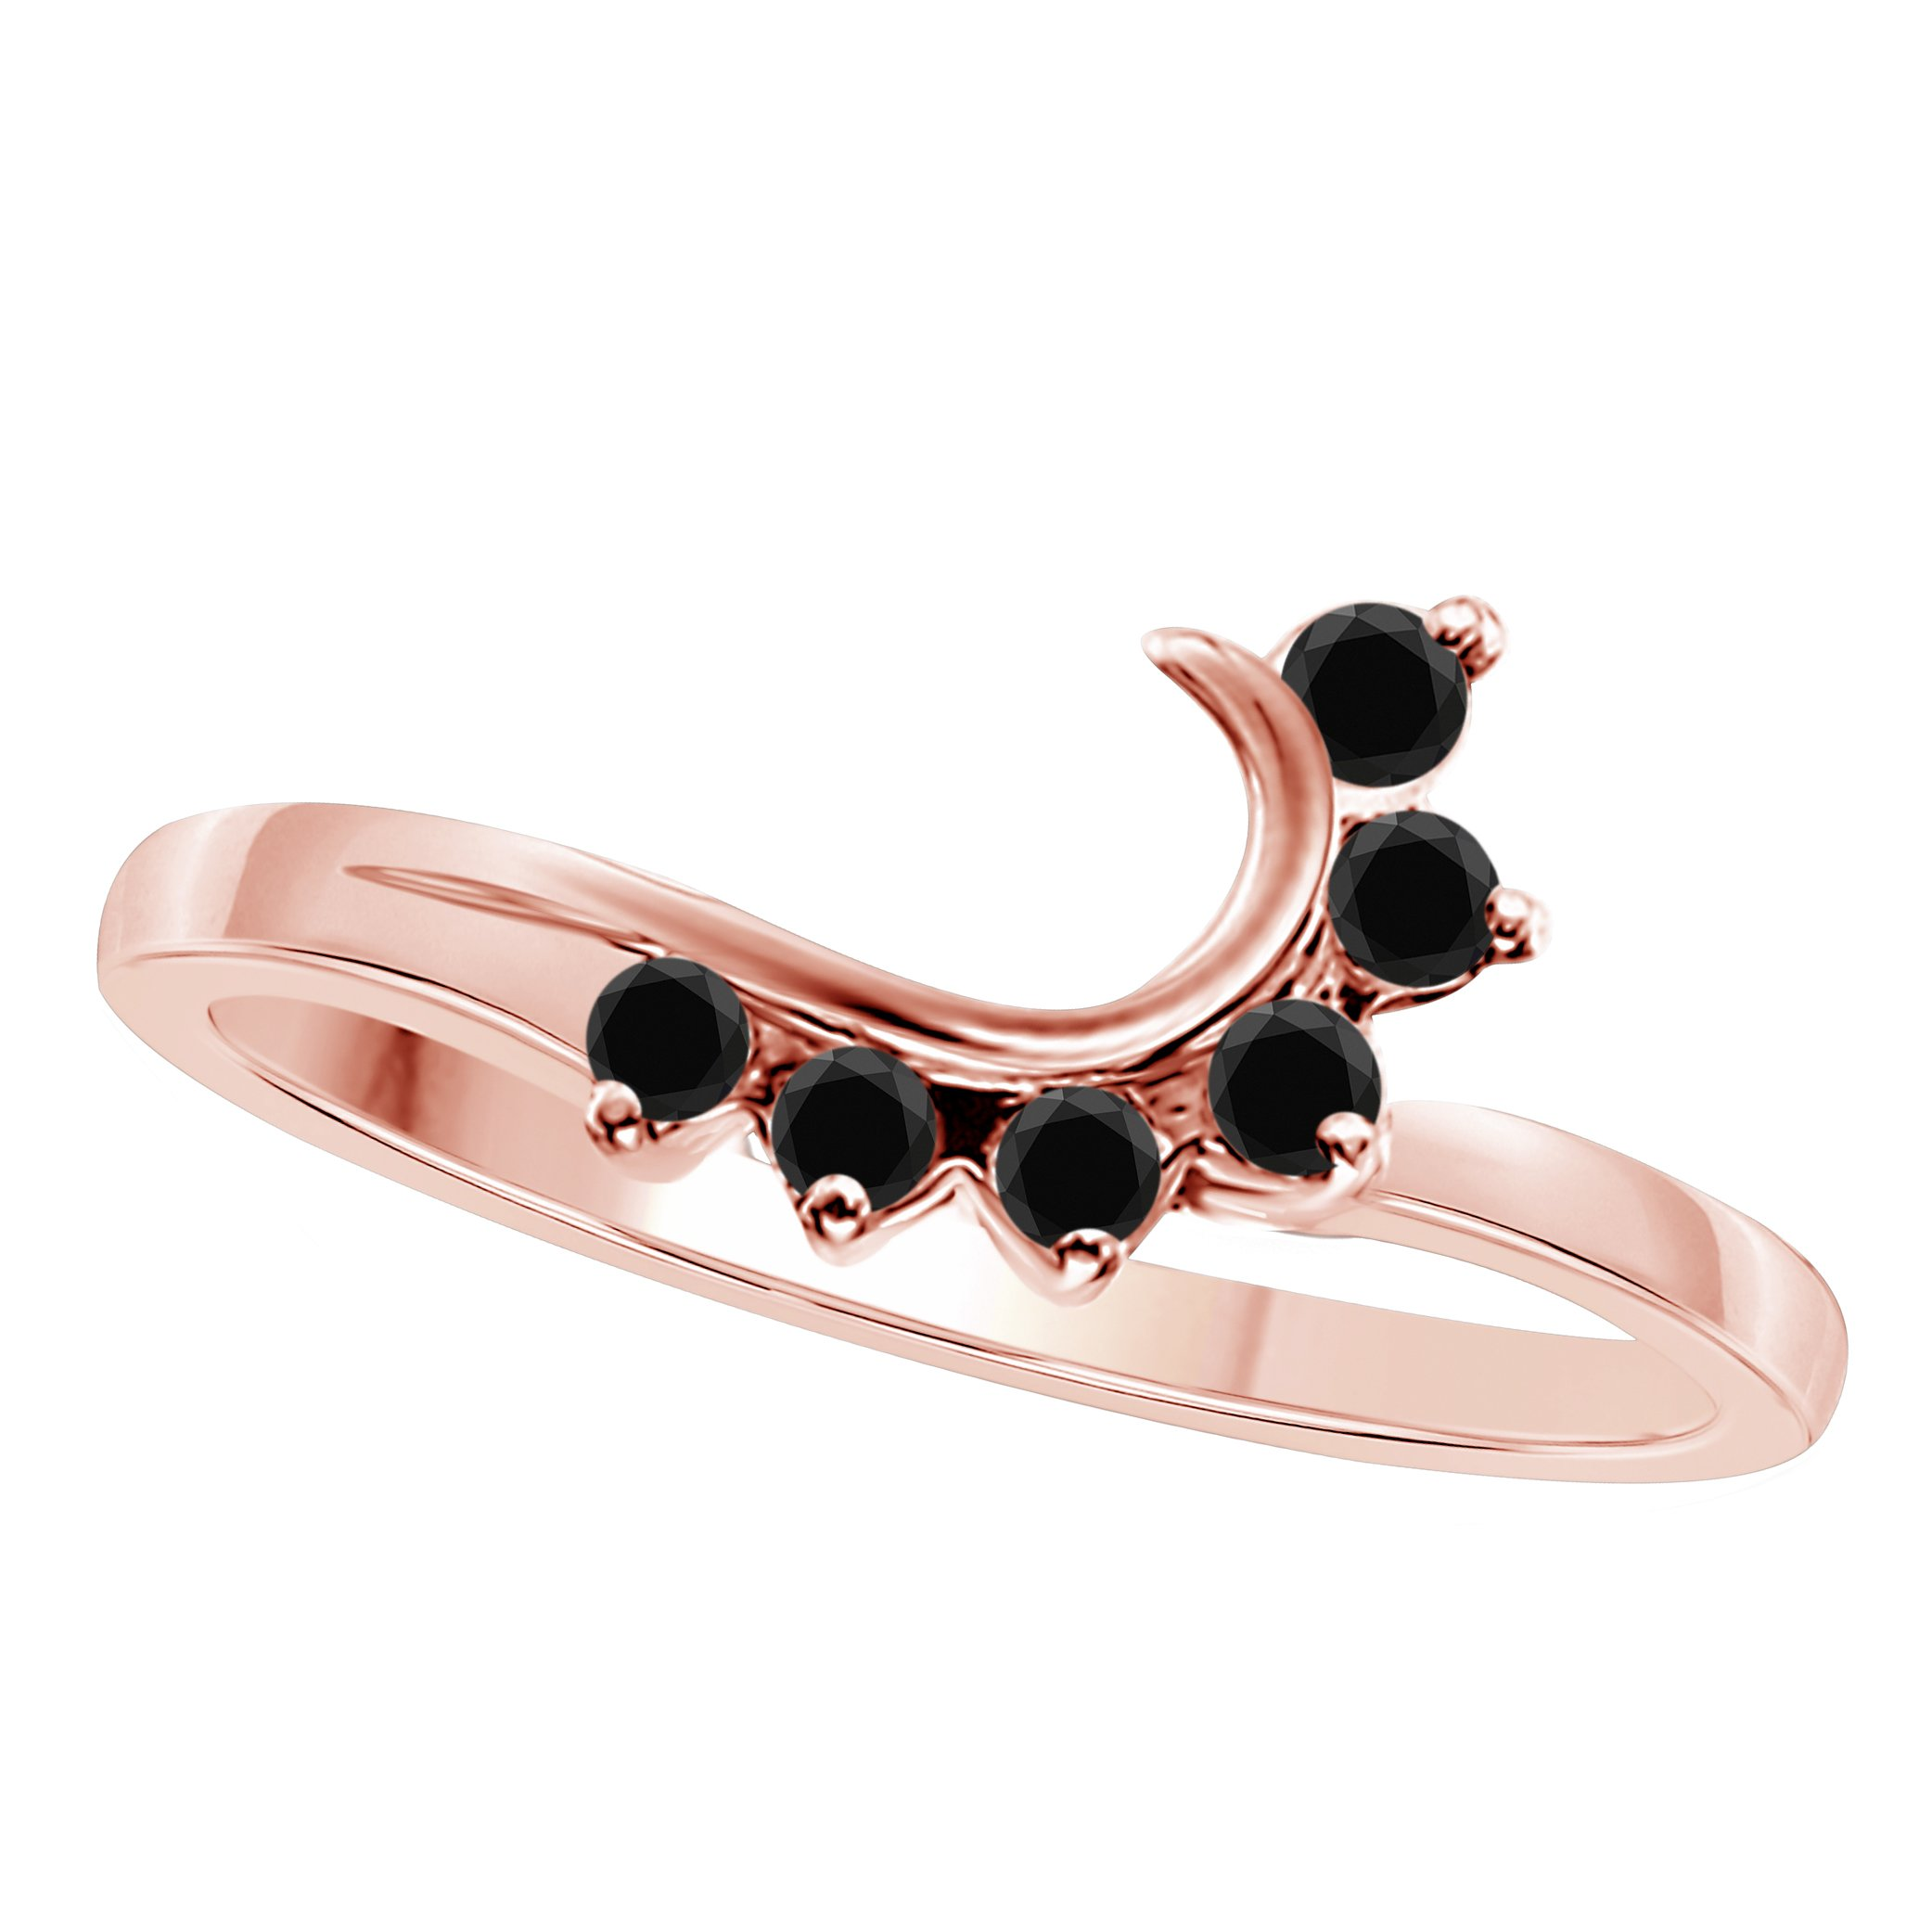 DreamJewels 14K Rose Gold Plated Alloy Round CZ Black Sapphire Wedding Band Enhancer Guard Double Ring